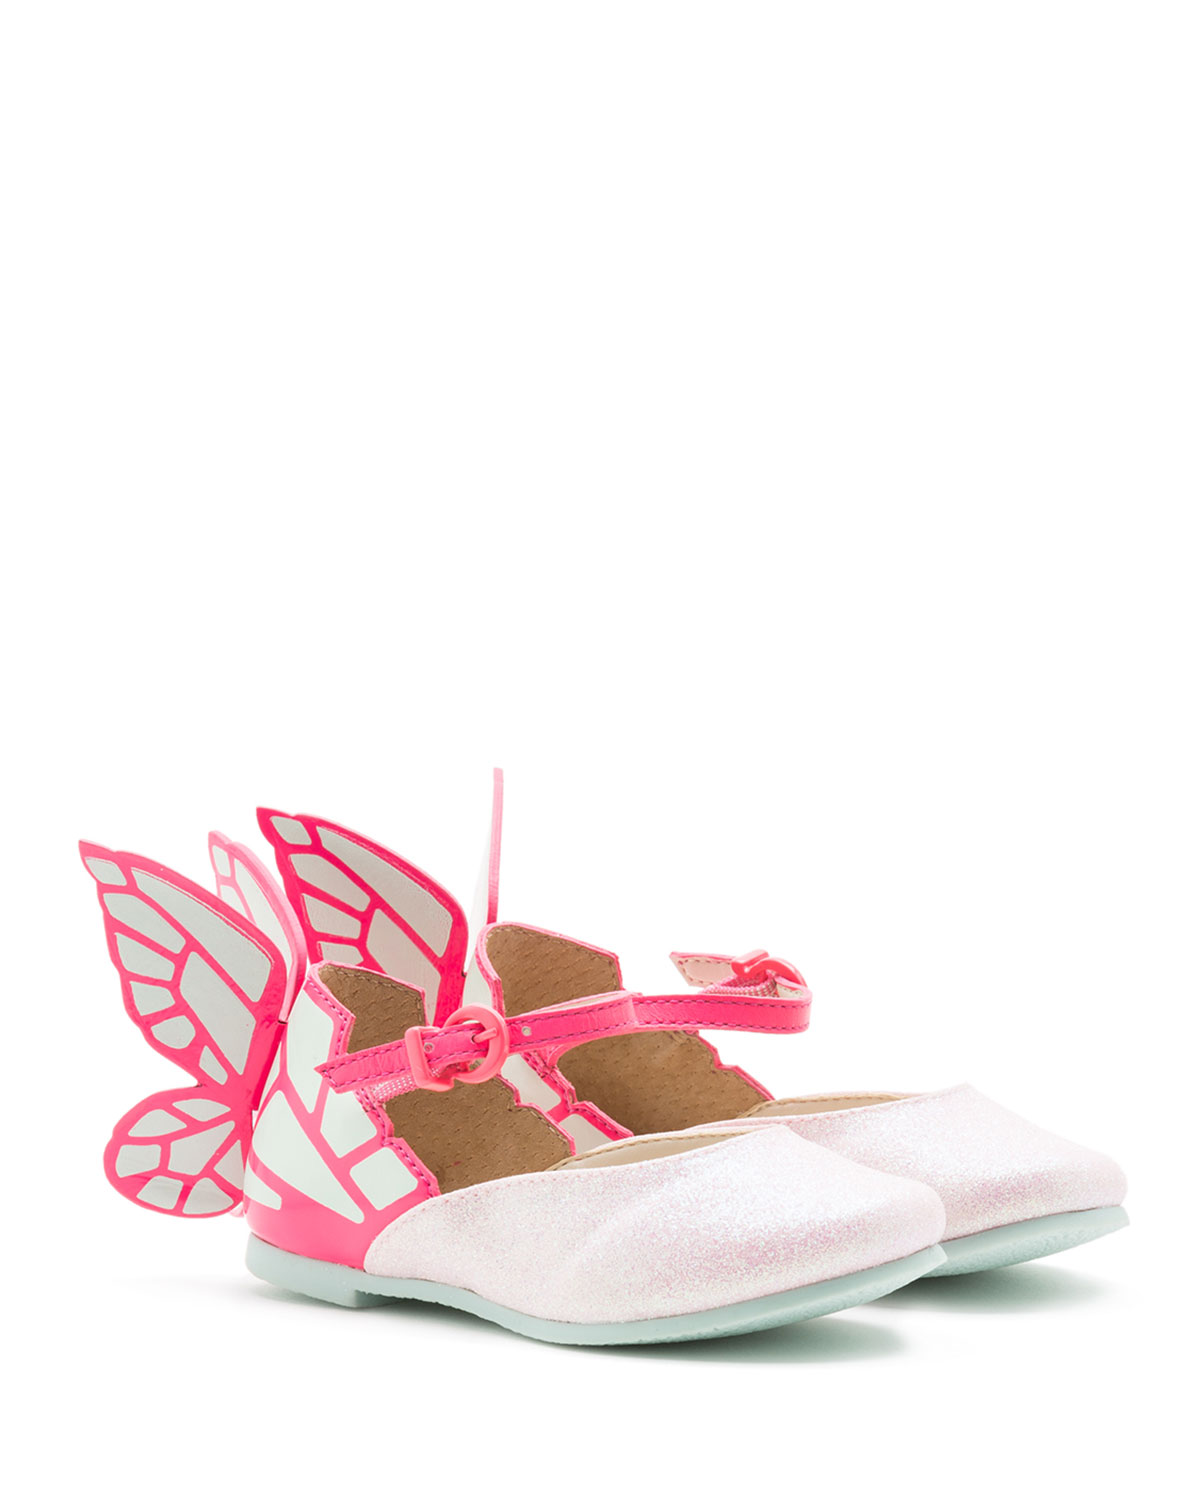 Sophia Webster Chiara Leather - Trim Butterfly Mary Jane Flat, Toddler / Youth Sizes 7T - 2Y